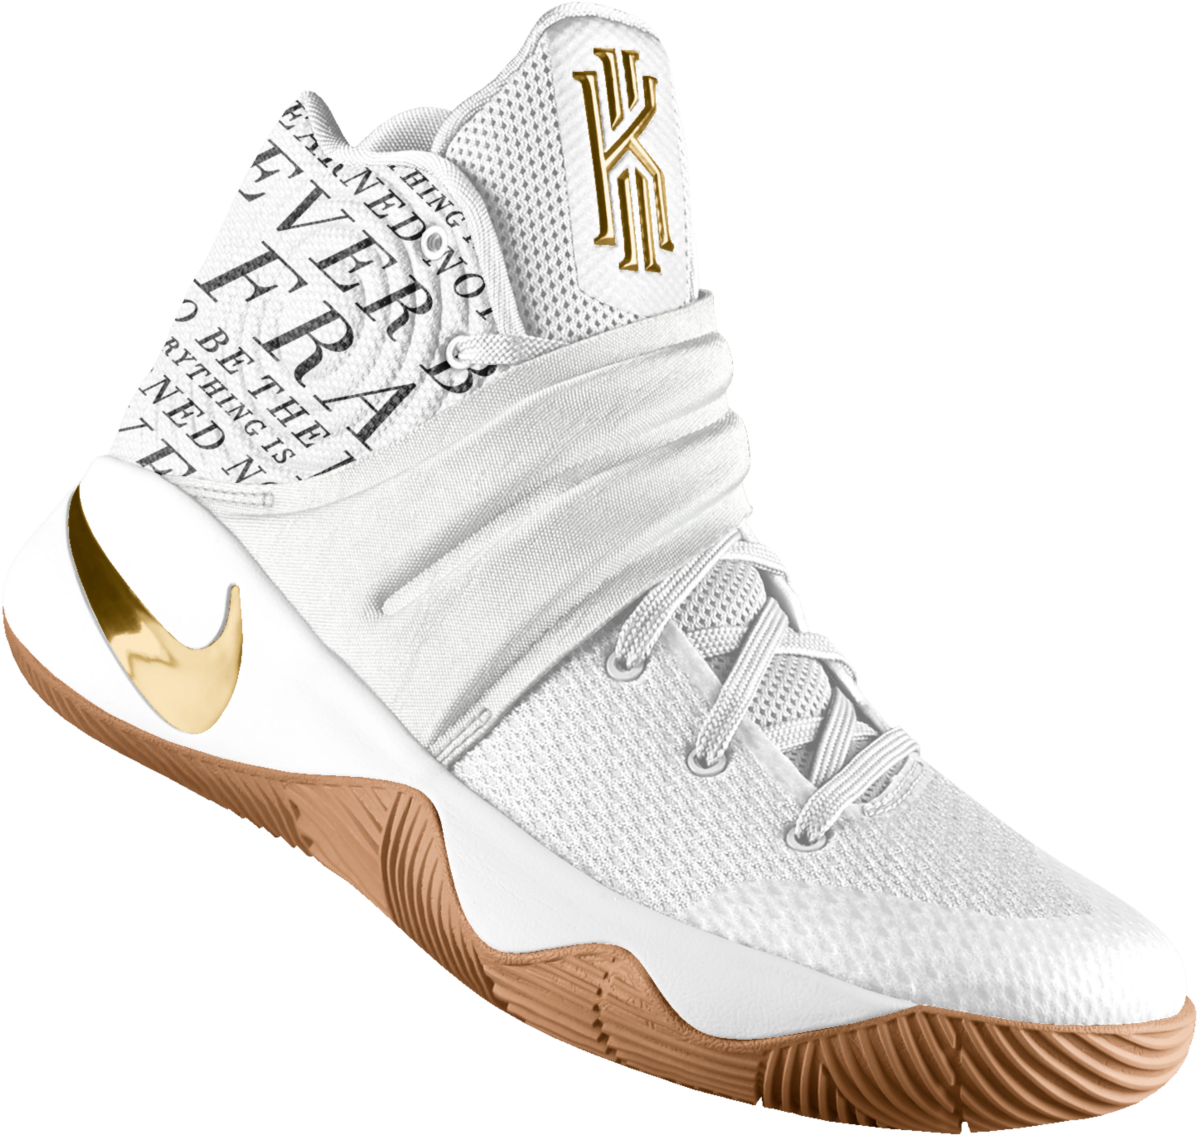 0fcbae5b21 Kyrie 2 Id Basketball Shoe - Kyrie Irving Basketball Shoes White And Gold  (1500x1500)